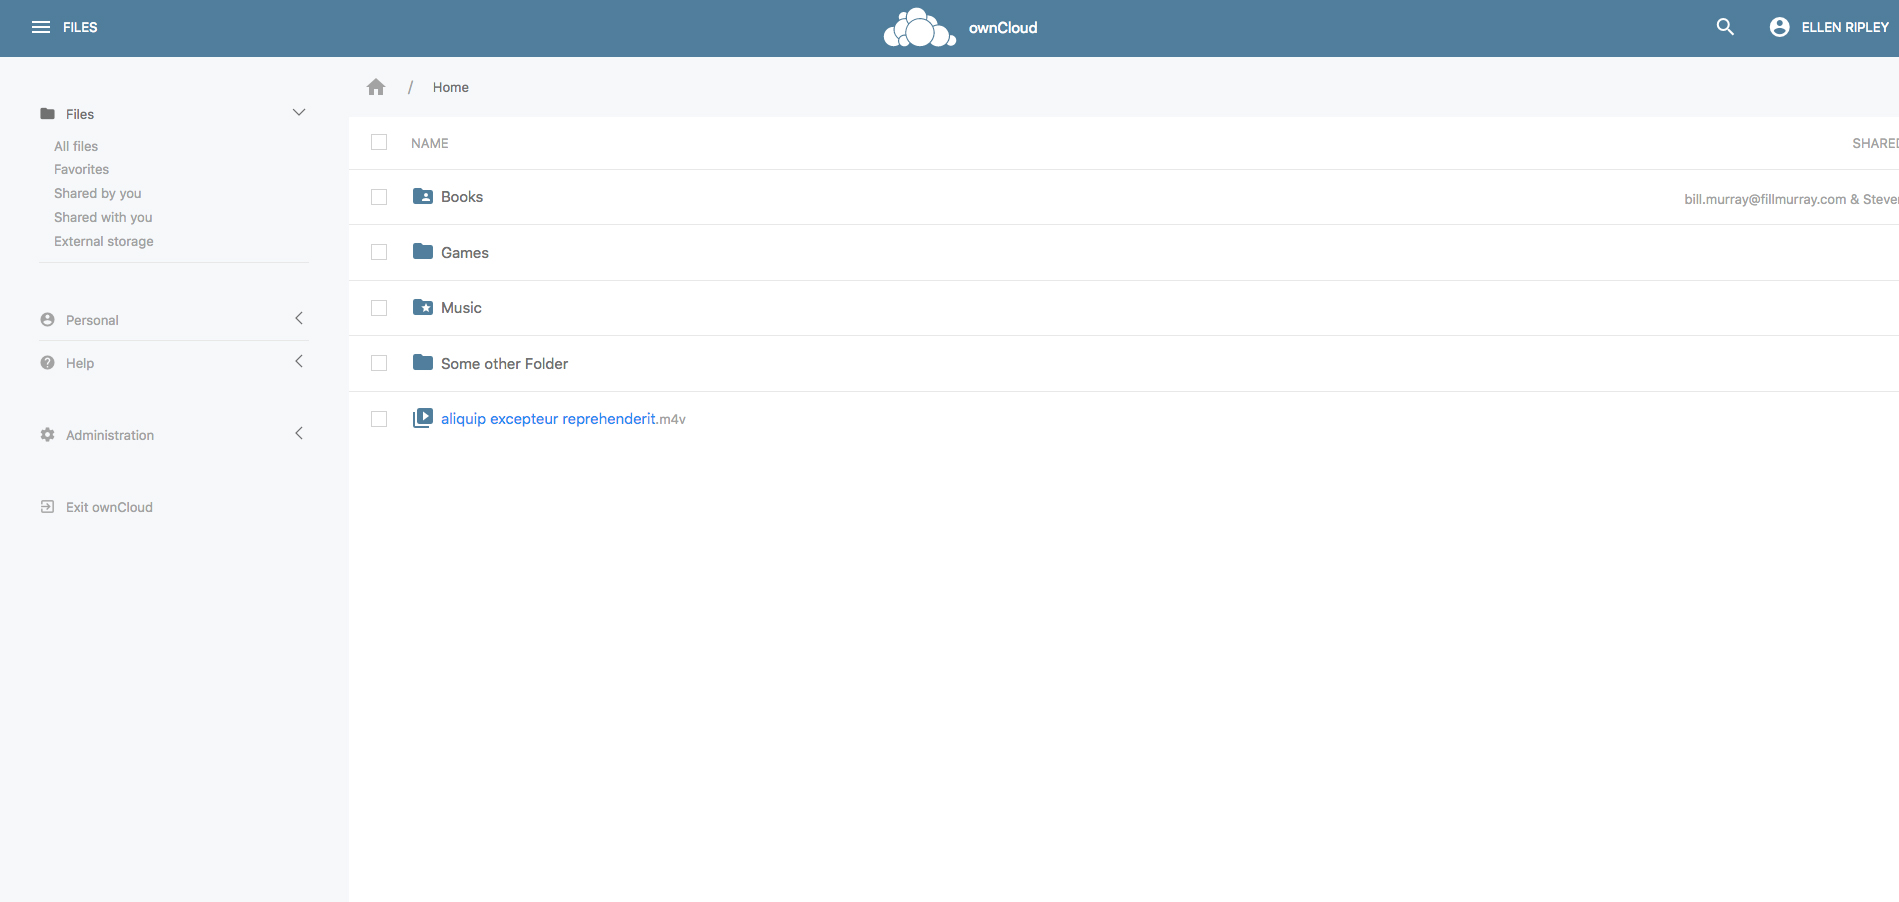 ownCloud-Phoenix-Files-View-extended